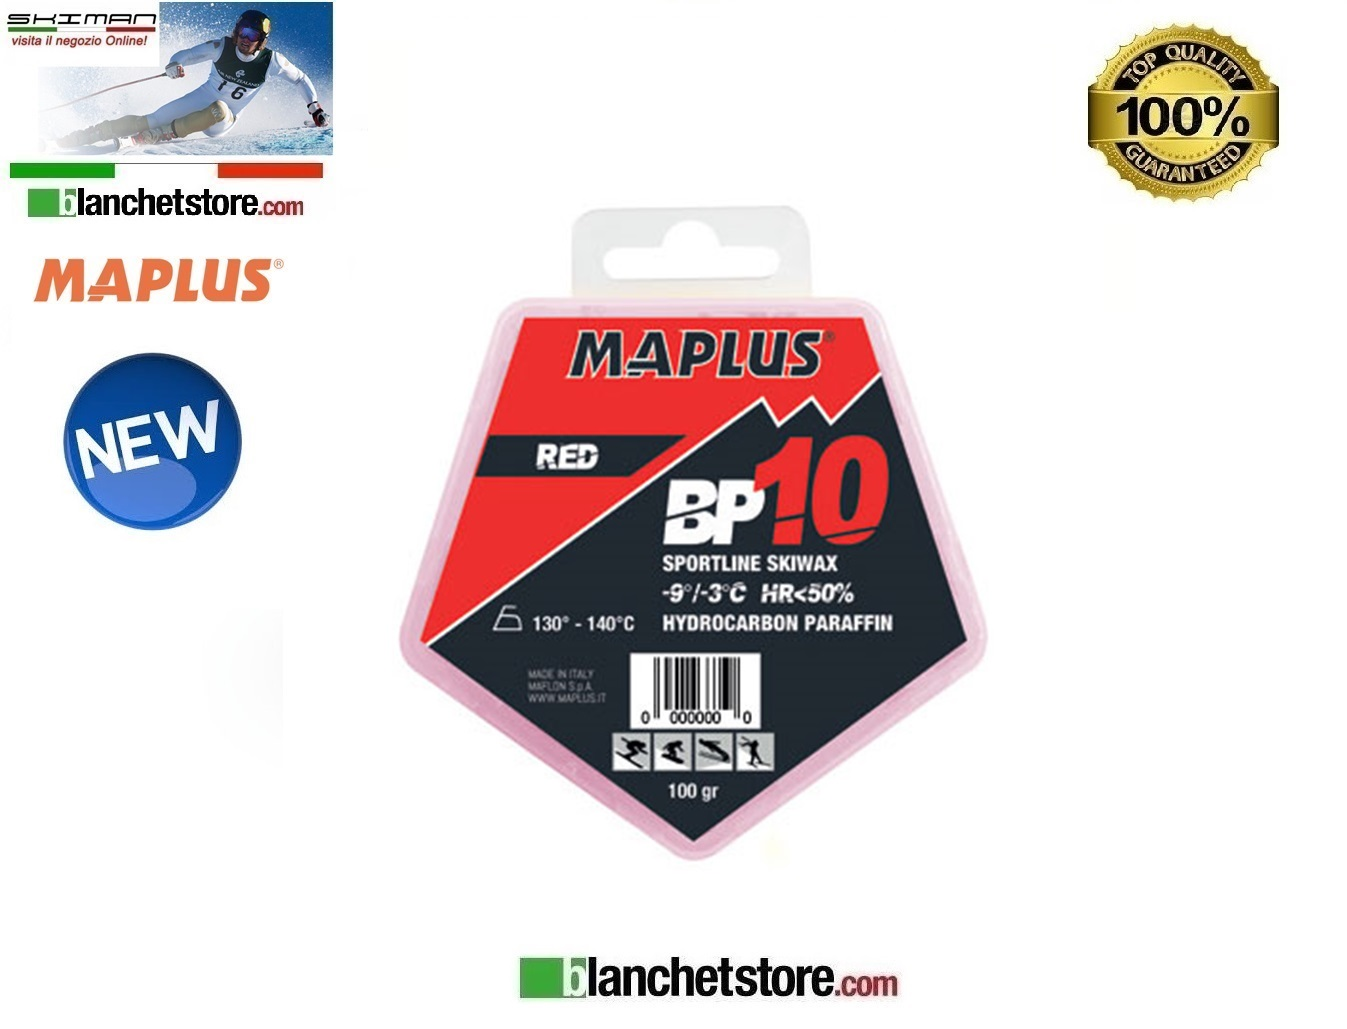 Sciolina MAPLUS BASE BP 10 Conf 100 gr RED NEW